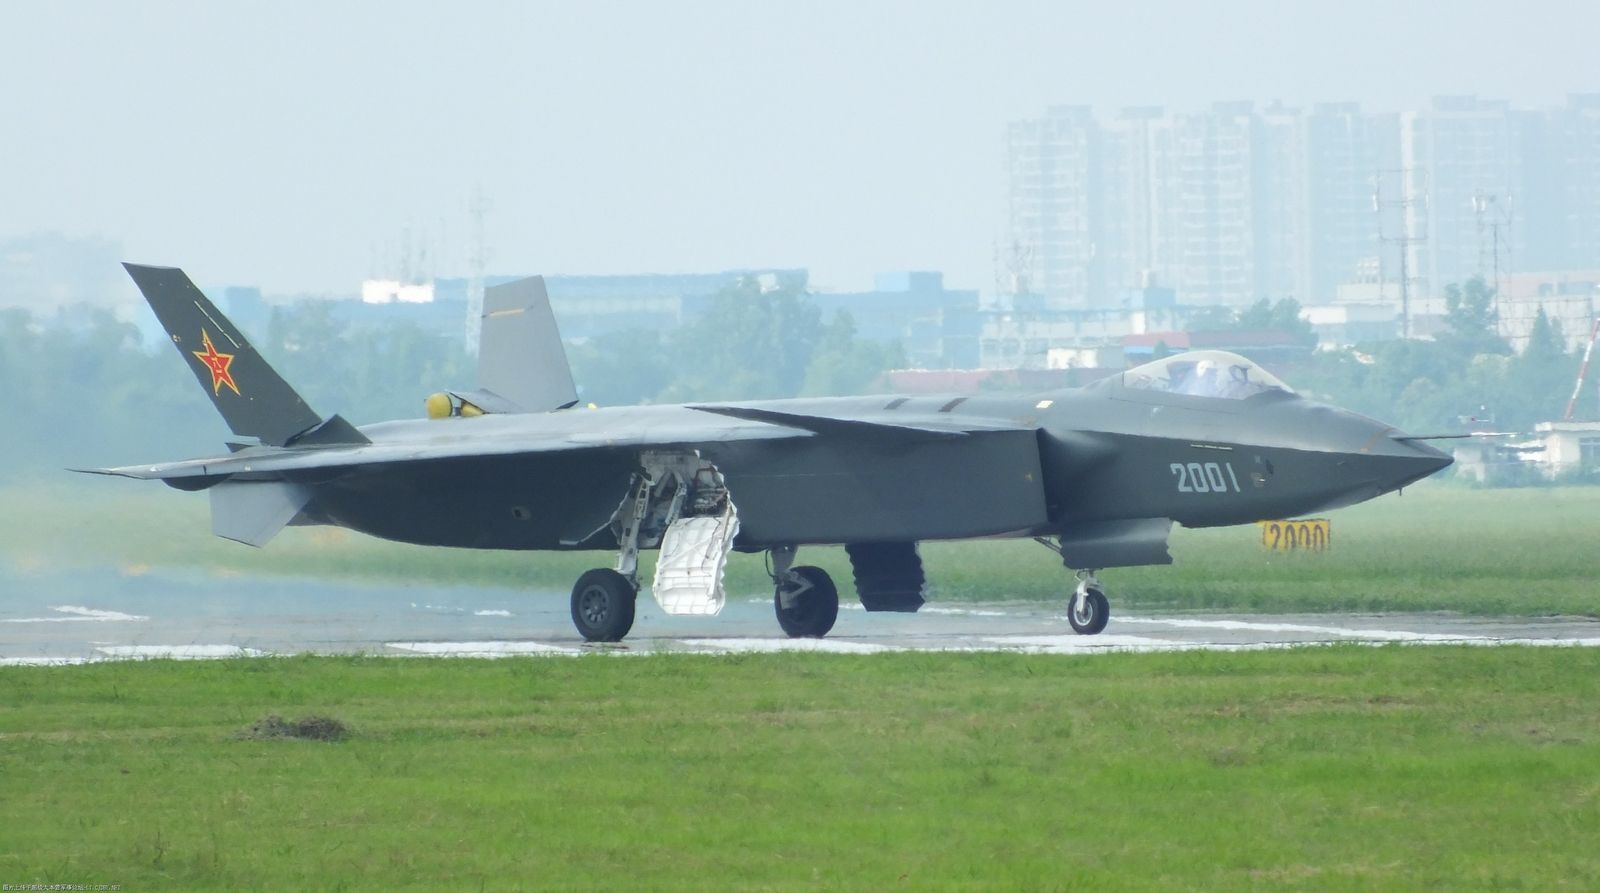 Observers cannot reach a consensus on J-20's primary role.